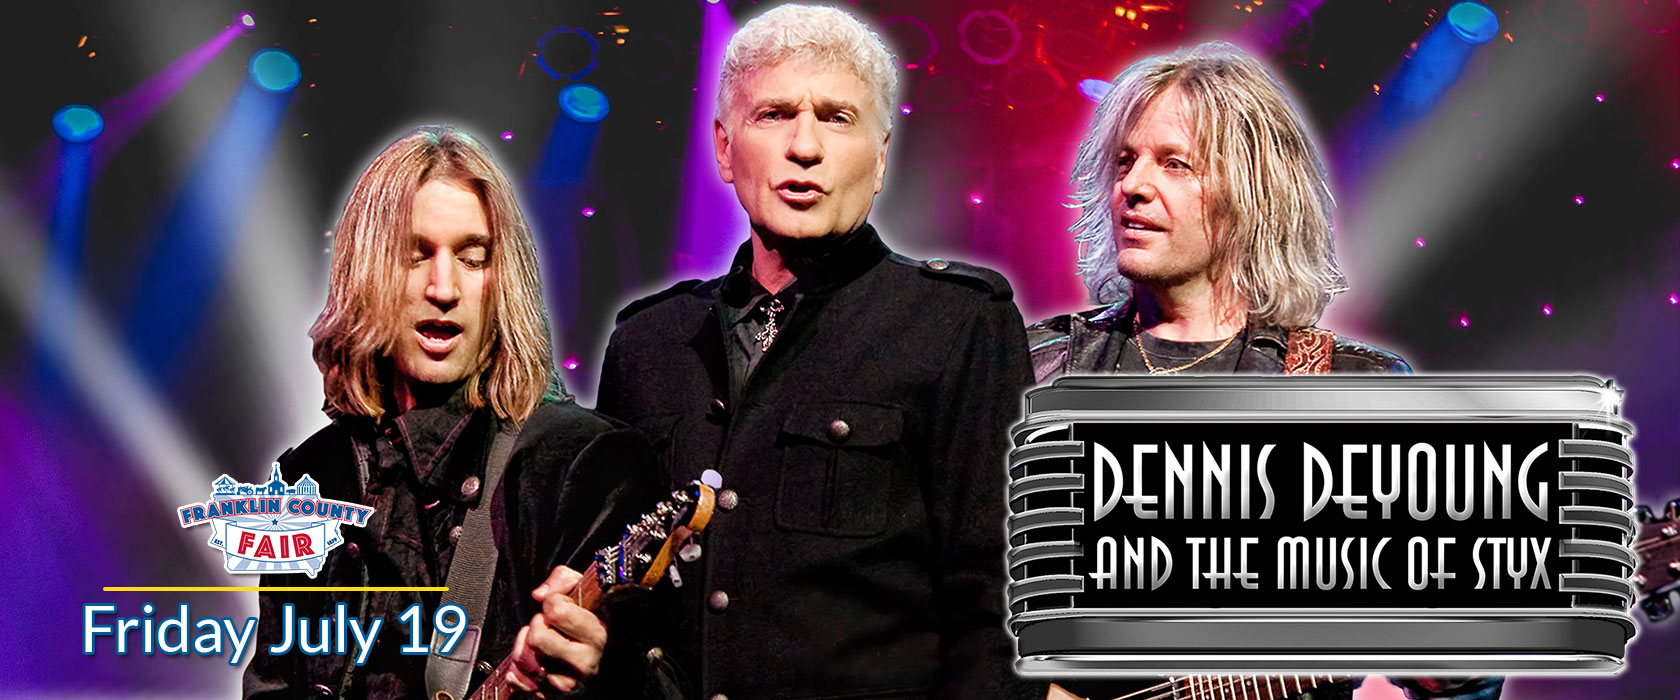 Franklin County Fair Dennis DeYoung - Friday July 19